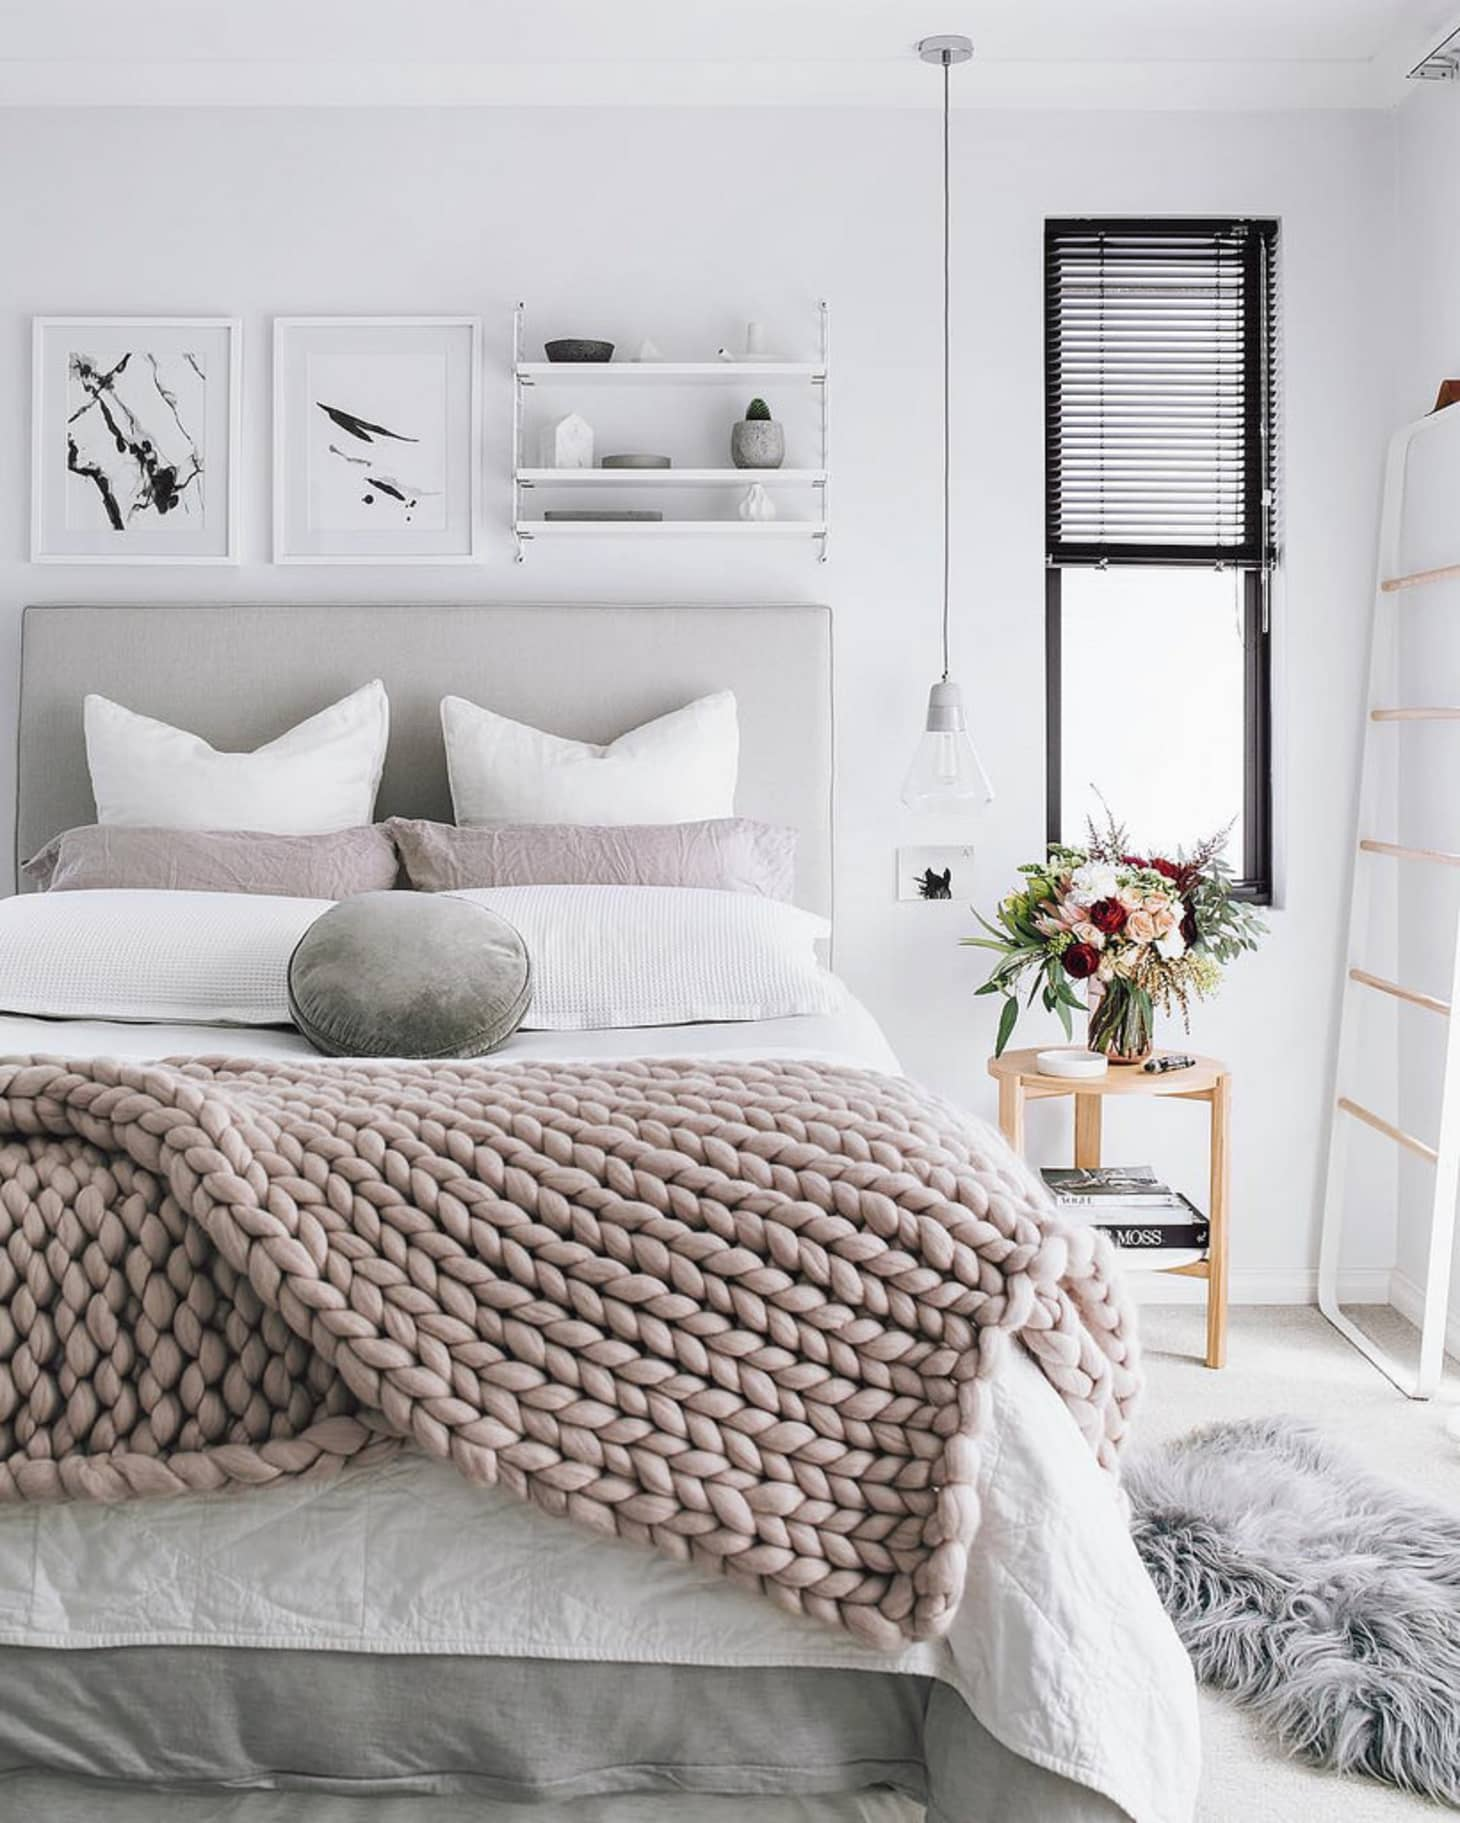 How to Create a Cozy Bedroom | Apartment Therapy